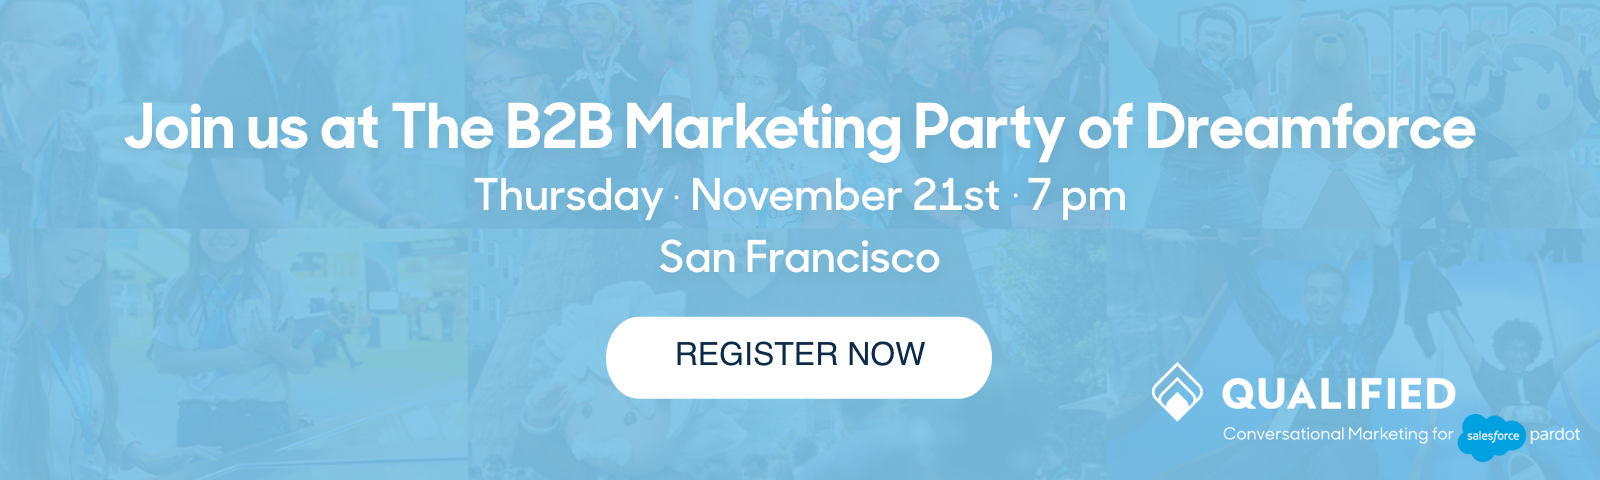 Qualified Pardot Sercante Dreamforce '19 B2B Marketing Party